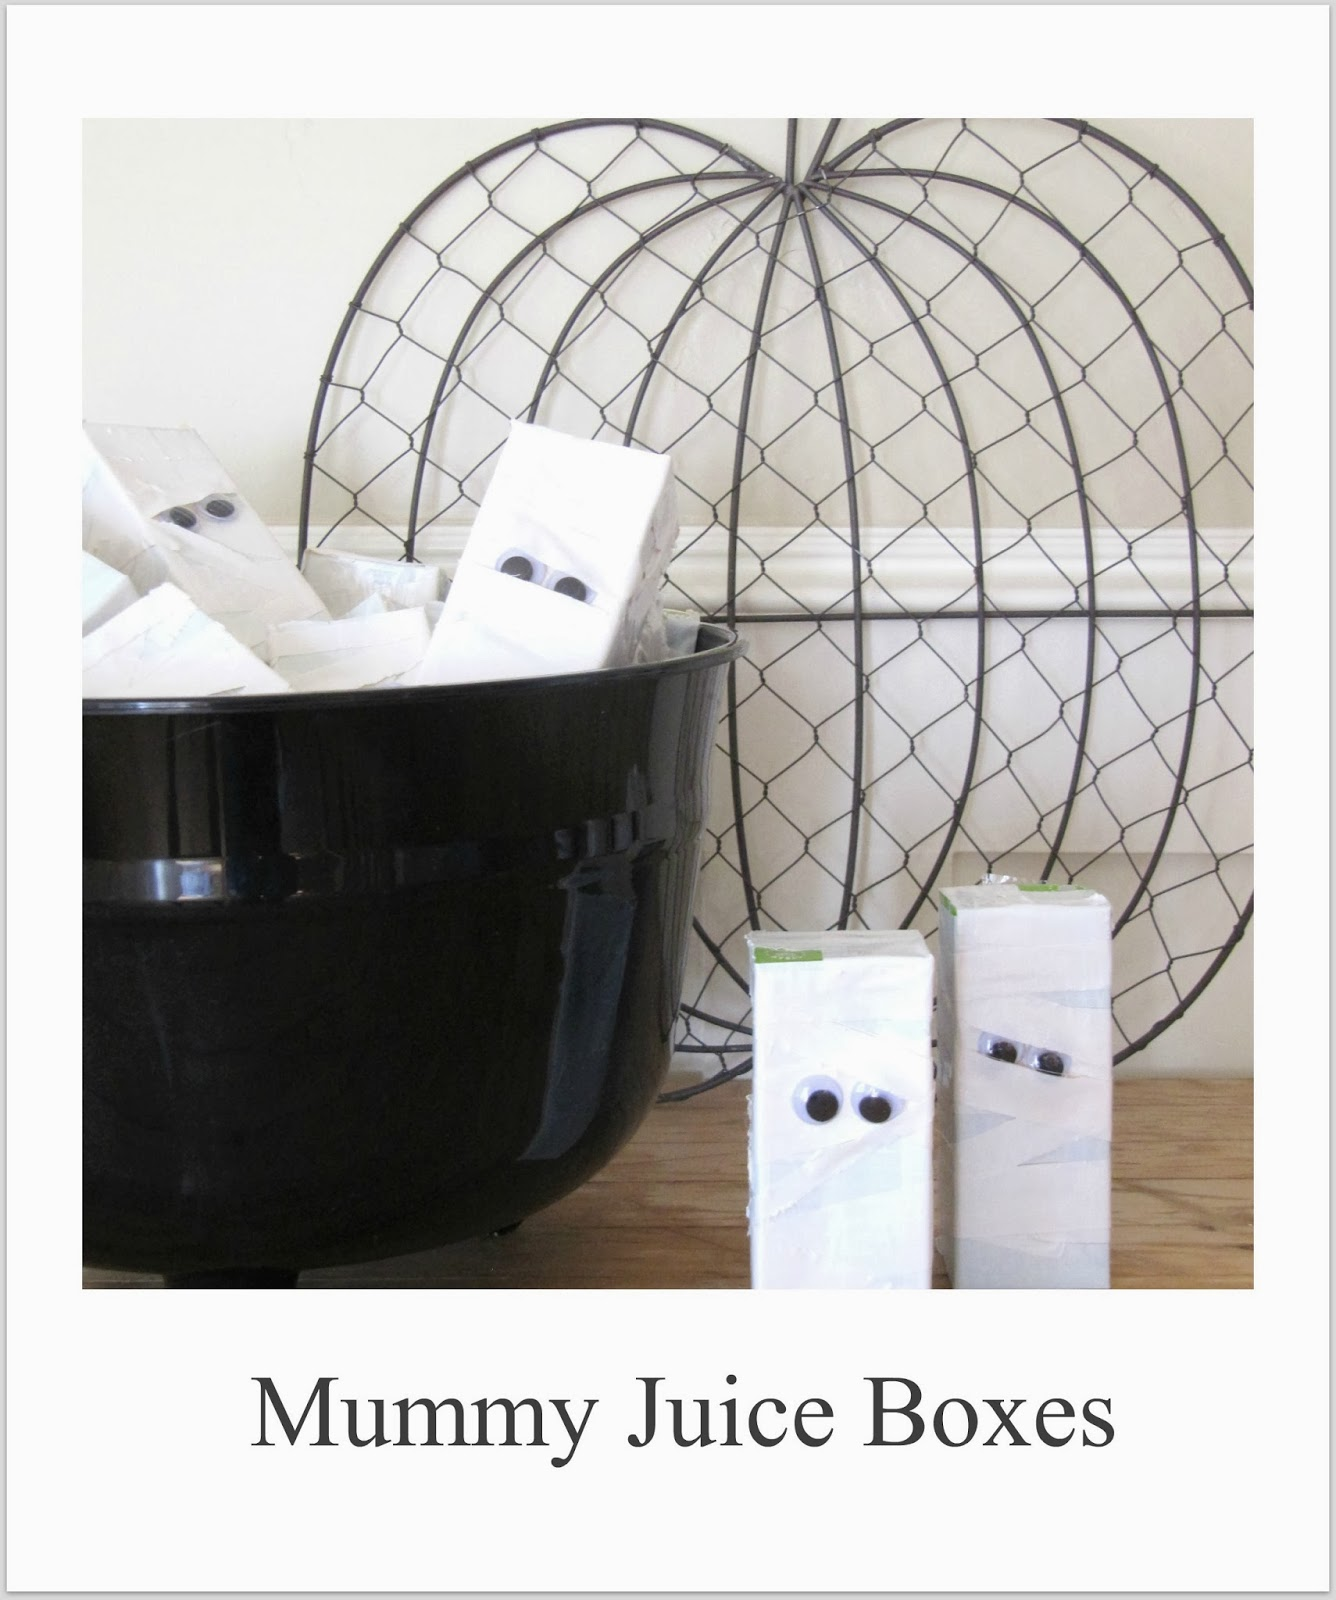 http://thewickerhouse.blogspot.com/2013/10/mummy-juice-boxs.html